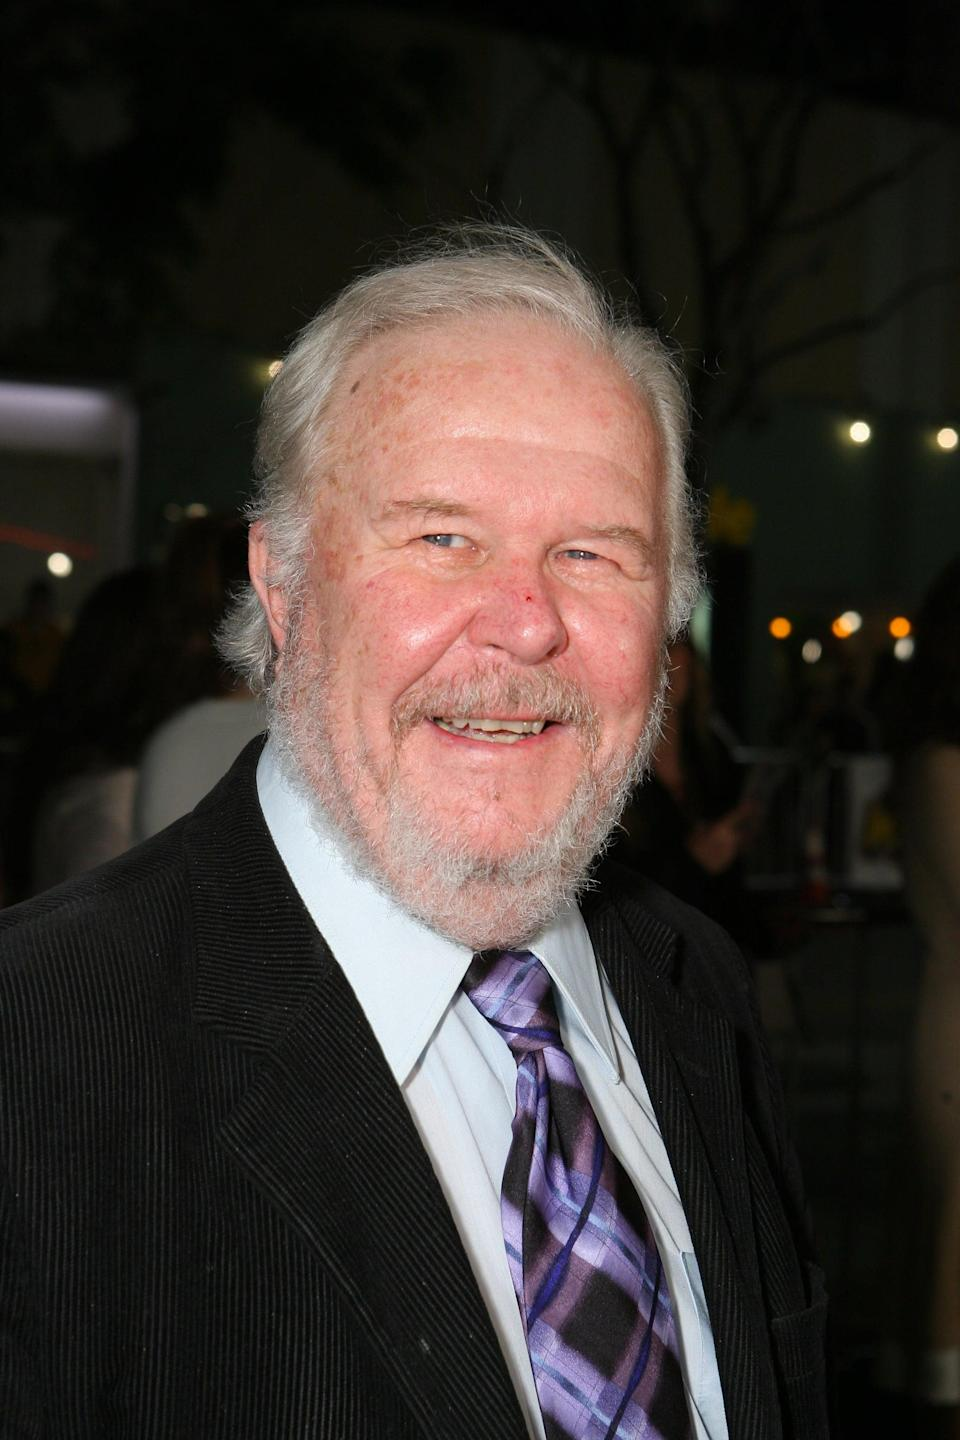 """<p>Oscar-nominated character actor Ned Beatty died on June 13 at the age of 83. """"<a href=""""https://www.cnn.com/2021/06/13/us/ned-beatty-actor-superman-dies/"""" class=""""link rapid-noclick-resp"""" rel=""""nofollow noopener"""" target=""""_blank"""" data-ylk=""""slk:Ned passed away from natural causes"""">Ned passed away from natural causes</a> Sunday morning, surrounded by his family and loved ones,"""" his manager Deborah Miller said via email to <strong>CNN</strong>. Once called the """"busiest actor in Hollywood,"""" Ned is perhaps best known for his roles as Bobby Trippe in 1972's <strong>Deliverance</strong>, Arthur Jensen in 1976's <strong>Network</strong>, Lex Luthor's idiot henchman Otis in 1978's <strong>Superman</strong> and 1980's <strong>Superman II</strong>, and as the voice of Lots-o'-Huggin' Bear in 2010's <strong>Toy Story. 3</strong>. The actor retired in 2013.</p>"""